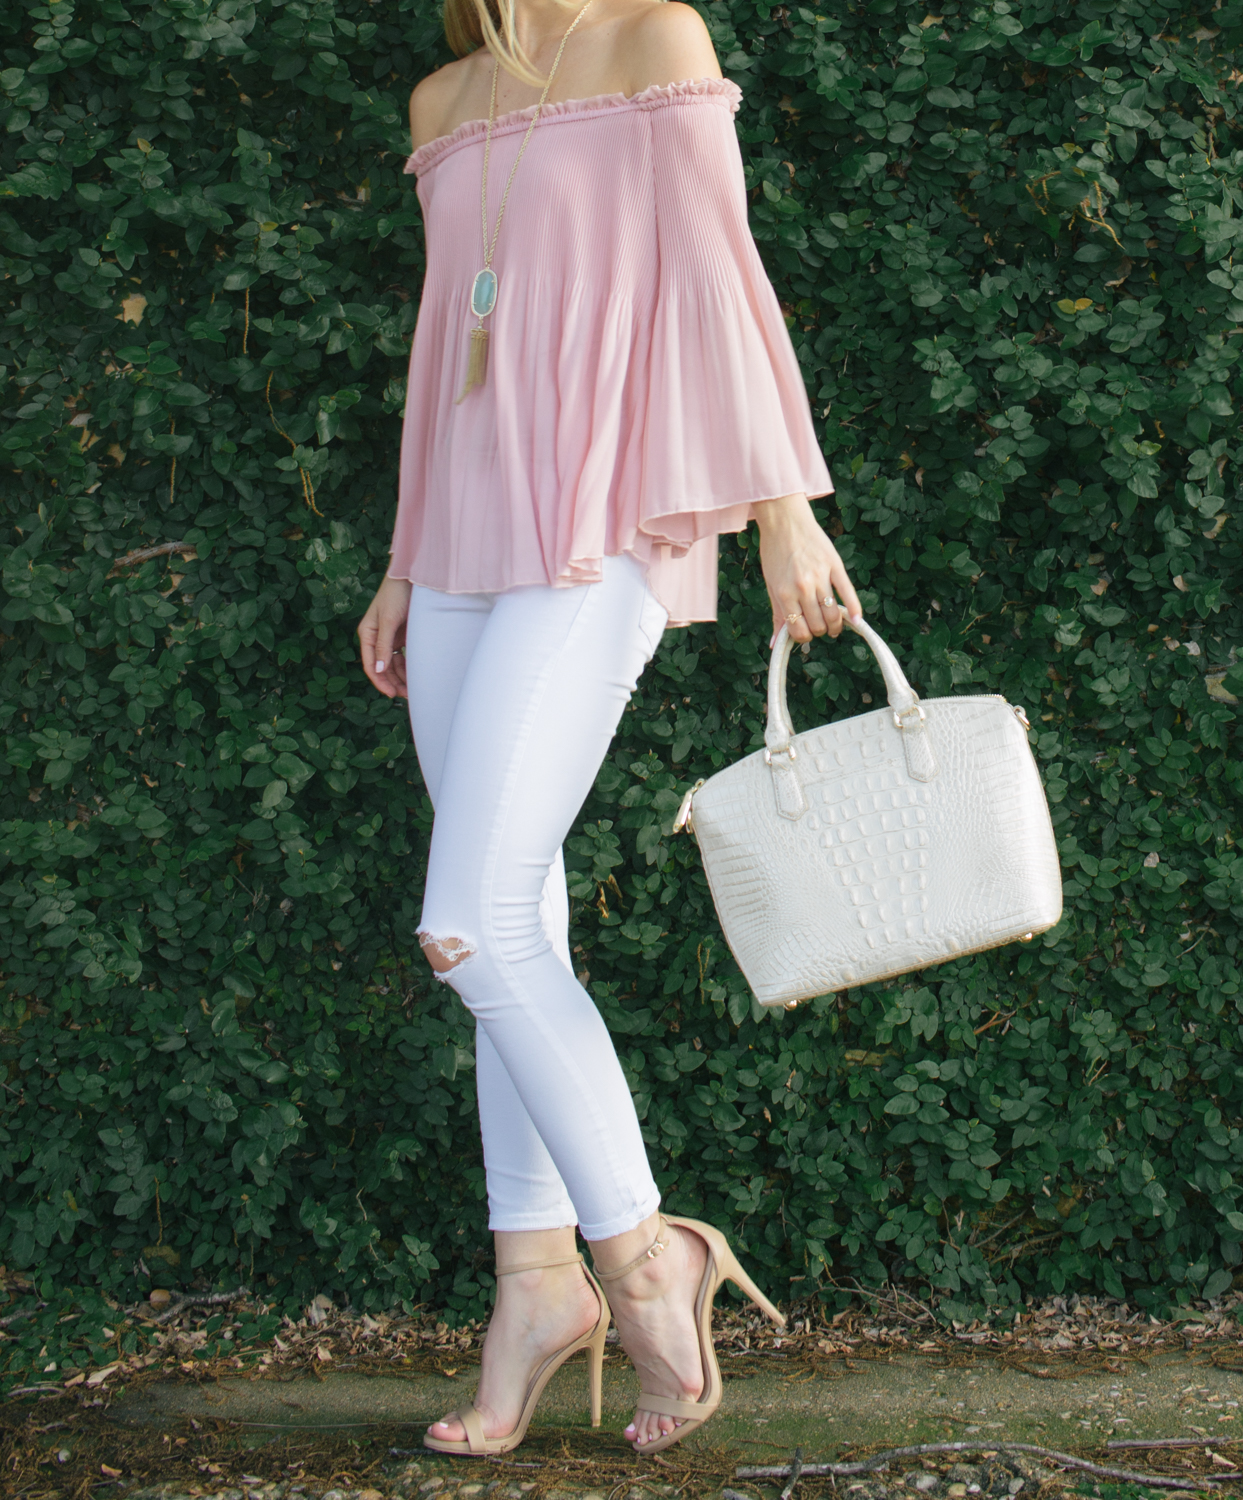 livvyland-blog-olivia-watson-austin-texas-fashion-blogger-blush-pink-off-shoulder-top-topshop-white-skinny-jeans-date-night-outfit-summer-5